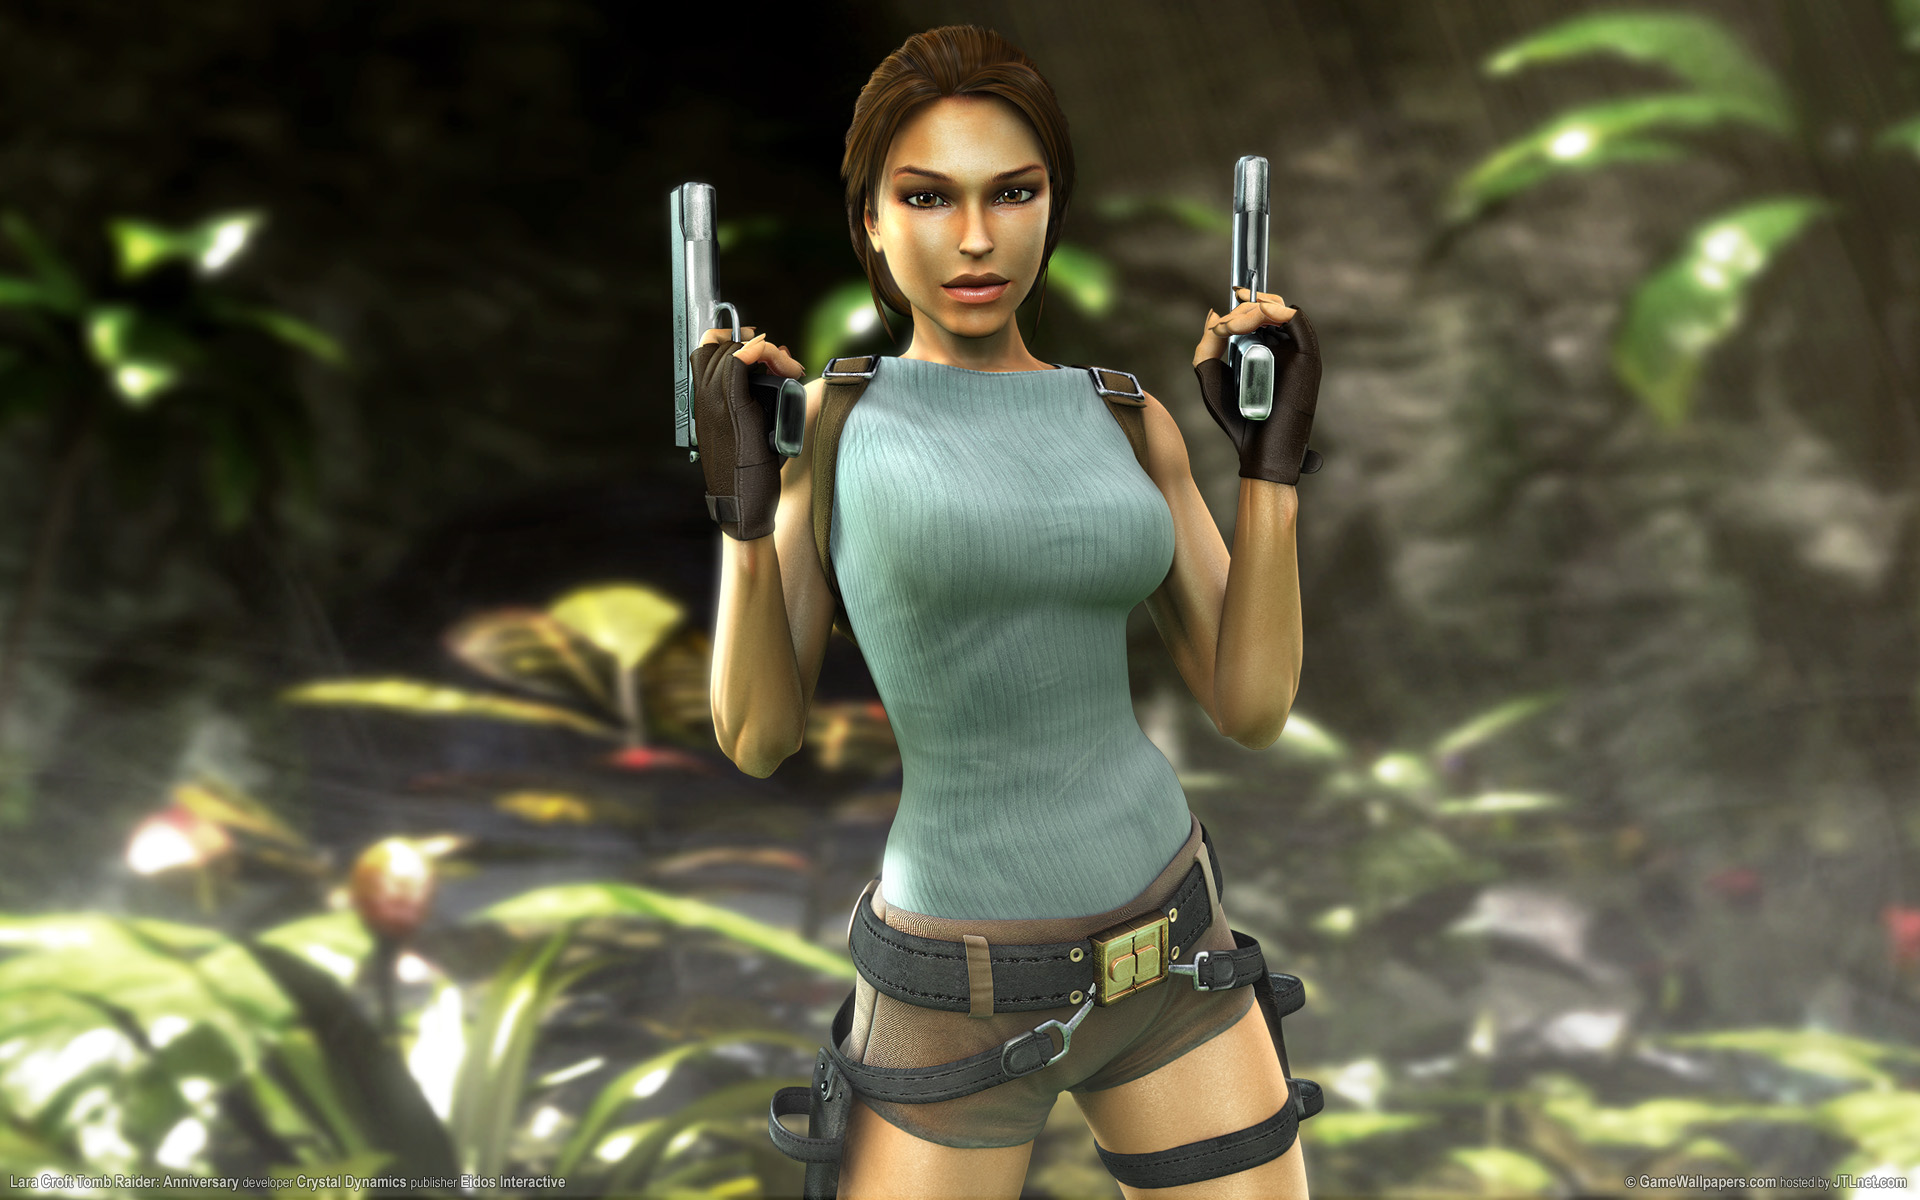 wallpaper_lara_croft_tomb_raider_anniversary_05_1920x1200.jpg